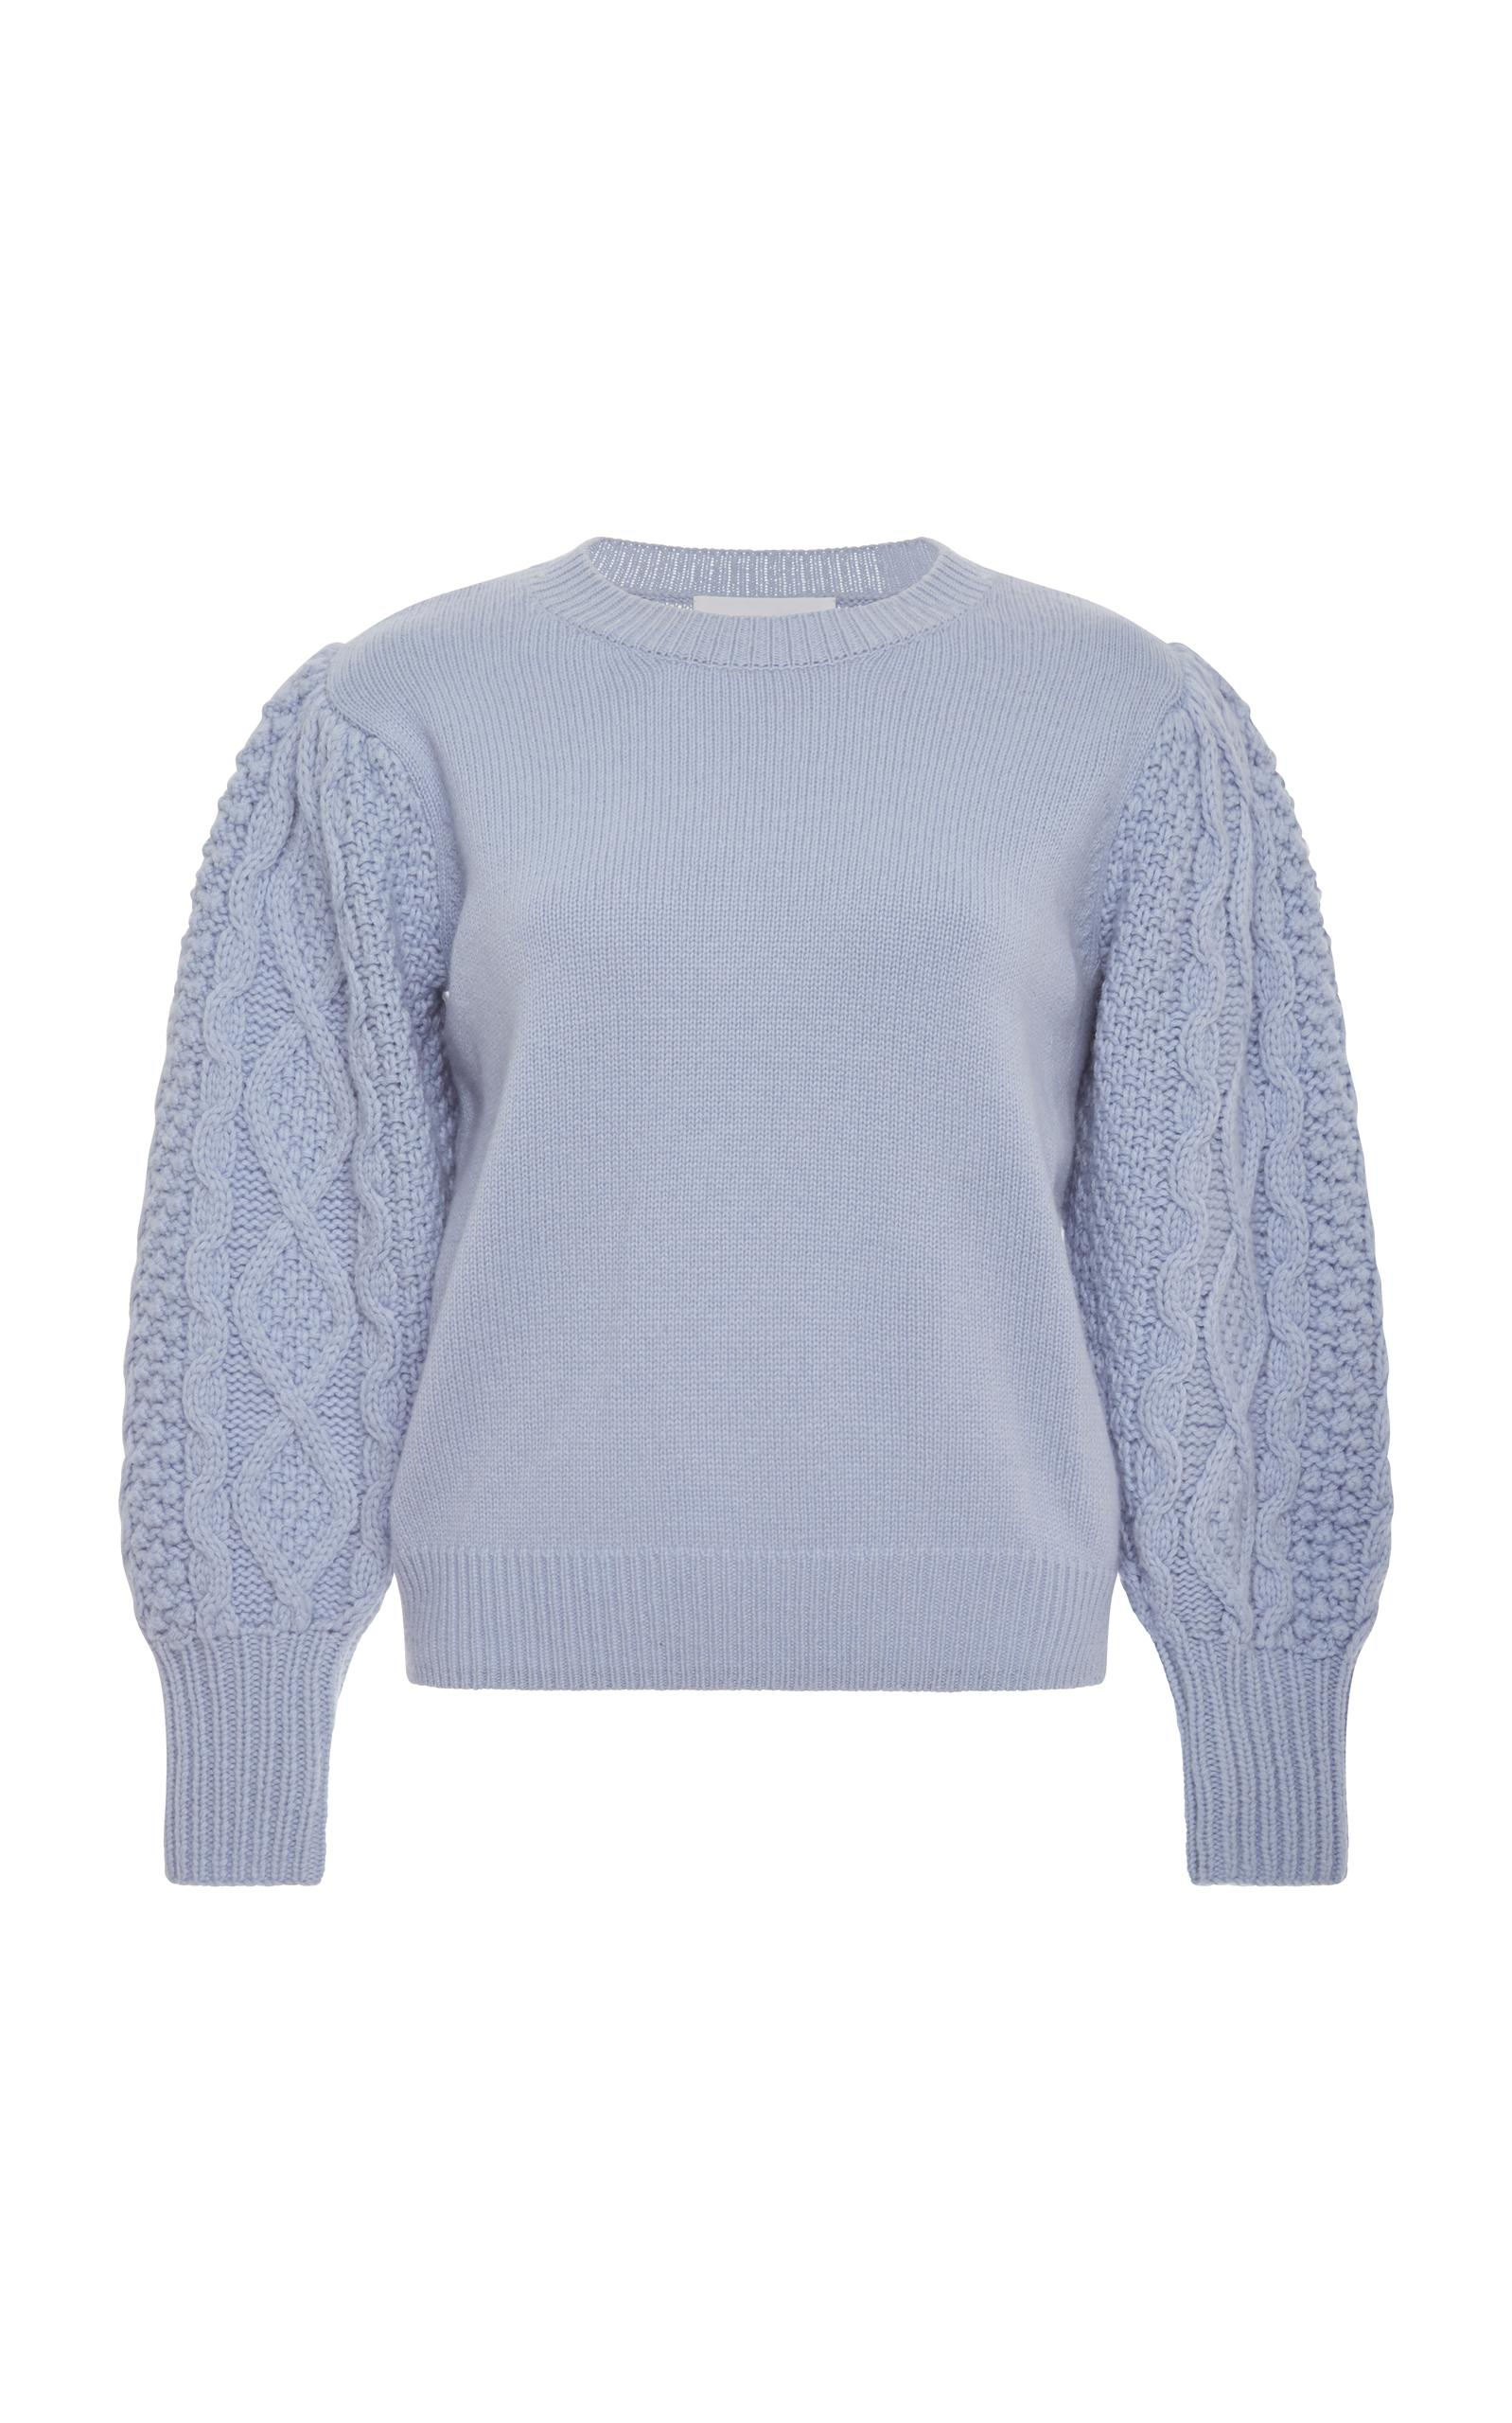 Co Cable-Knit-Sleeve Wool-Cashmere Sweater In Blue